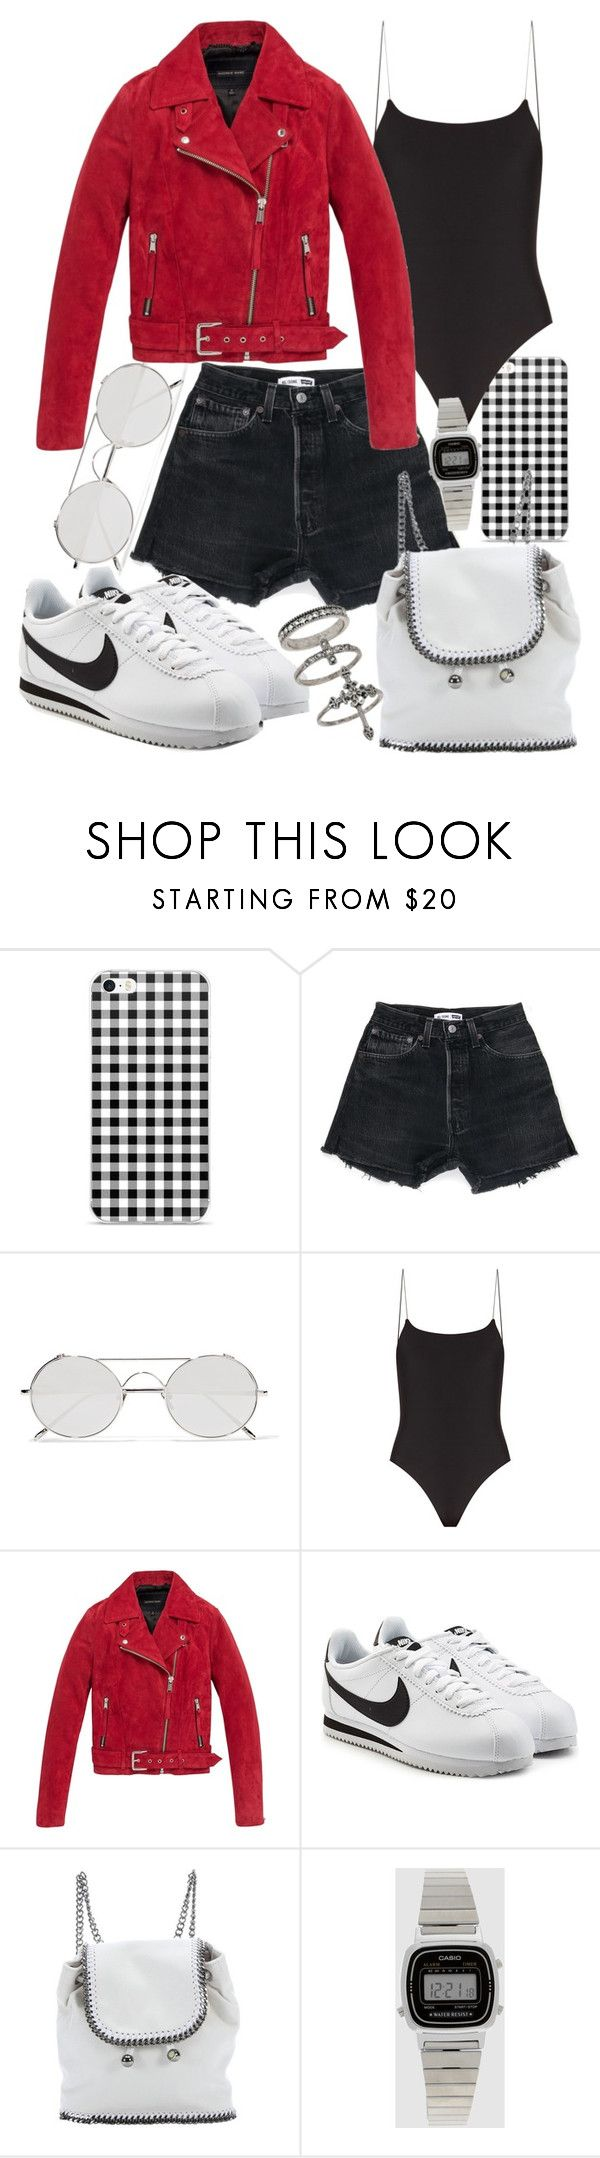 """""""Untitled #21997"""" by florencia95 ❤ liked on Polyvore featuring Linda Farrow, Jade Swim, Andrew Marc, NIKE, STELLA McCARTNEY, Casio and Miss Selfridge"""